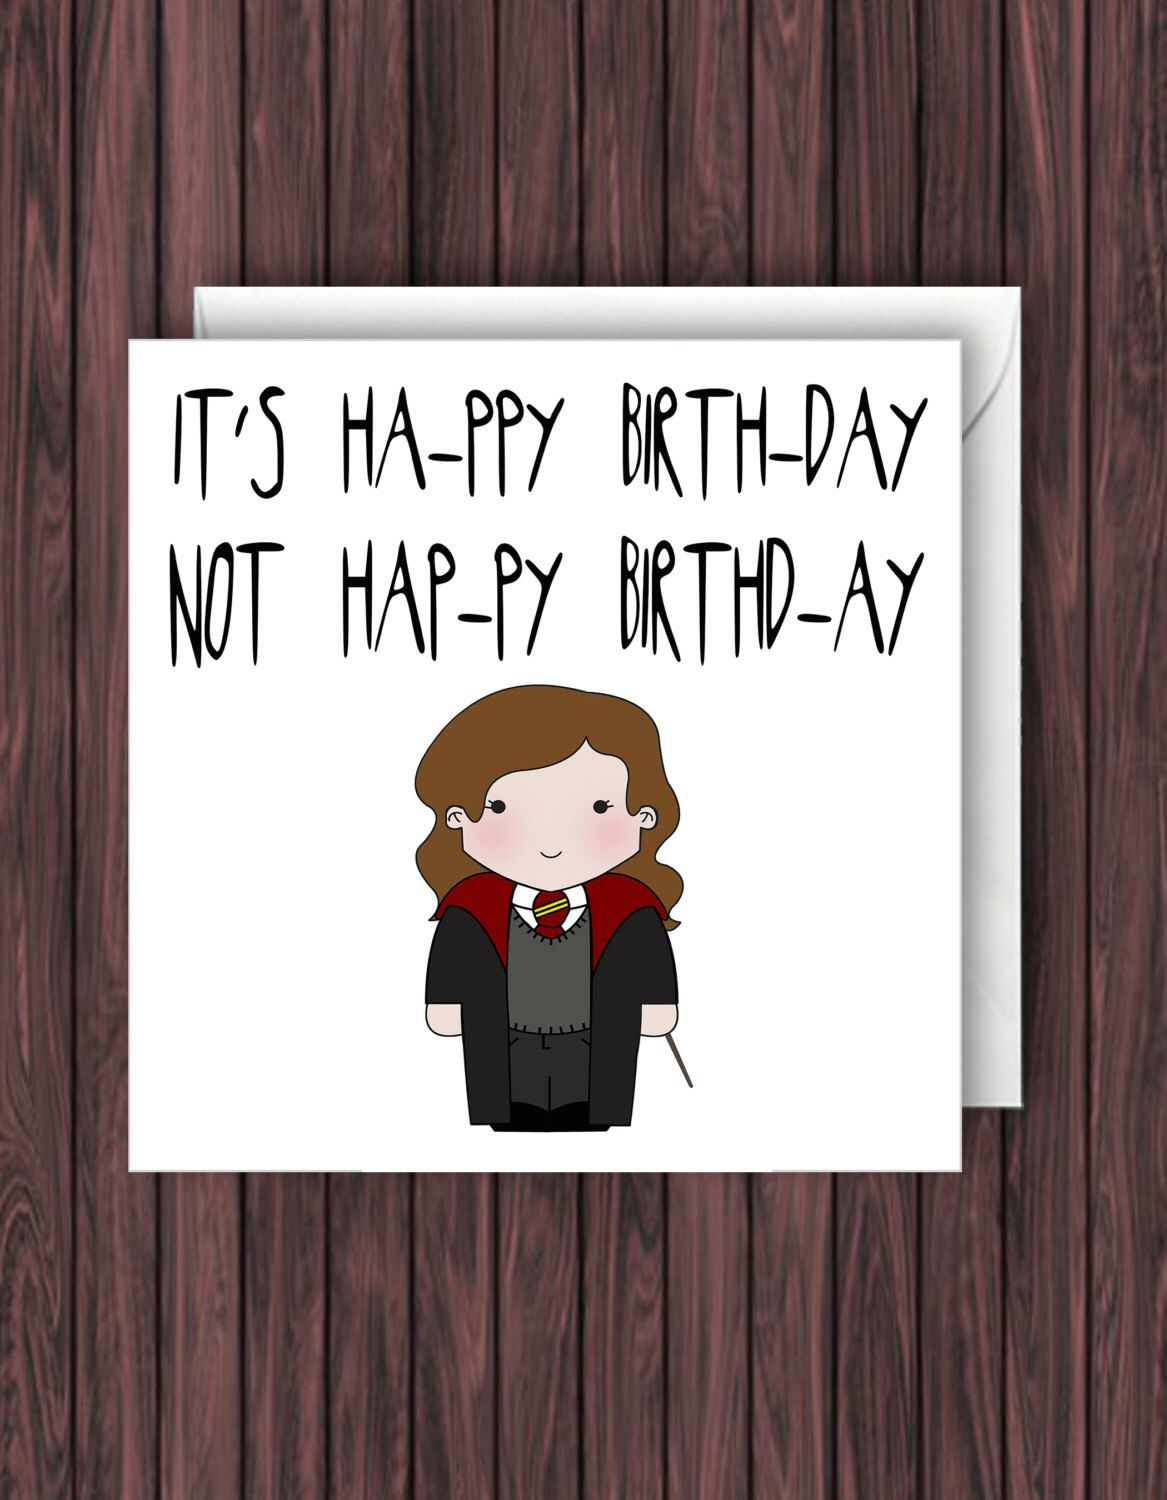 Levi o sa harry potter birthday card funny greetings card geek harry potter birthday card funny greetings card geek blank card kristyandbryce Choice Image